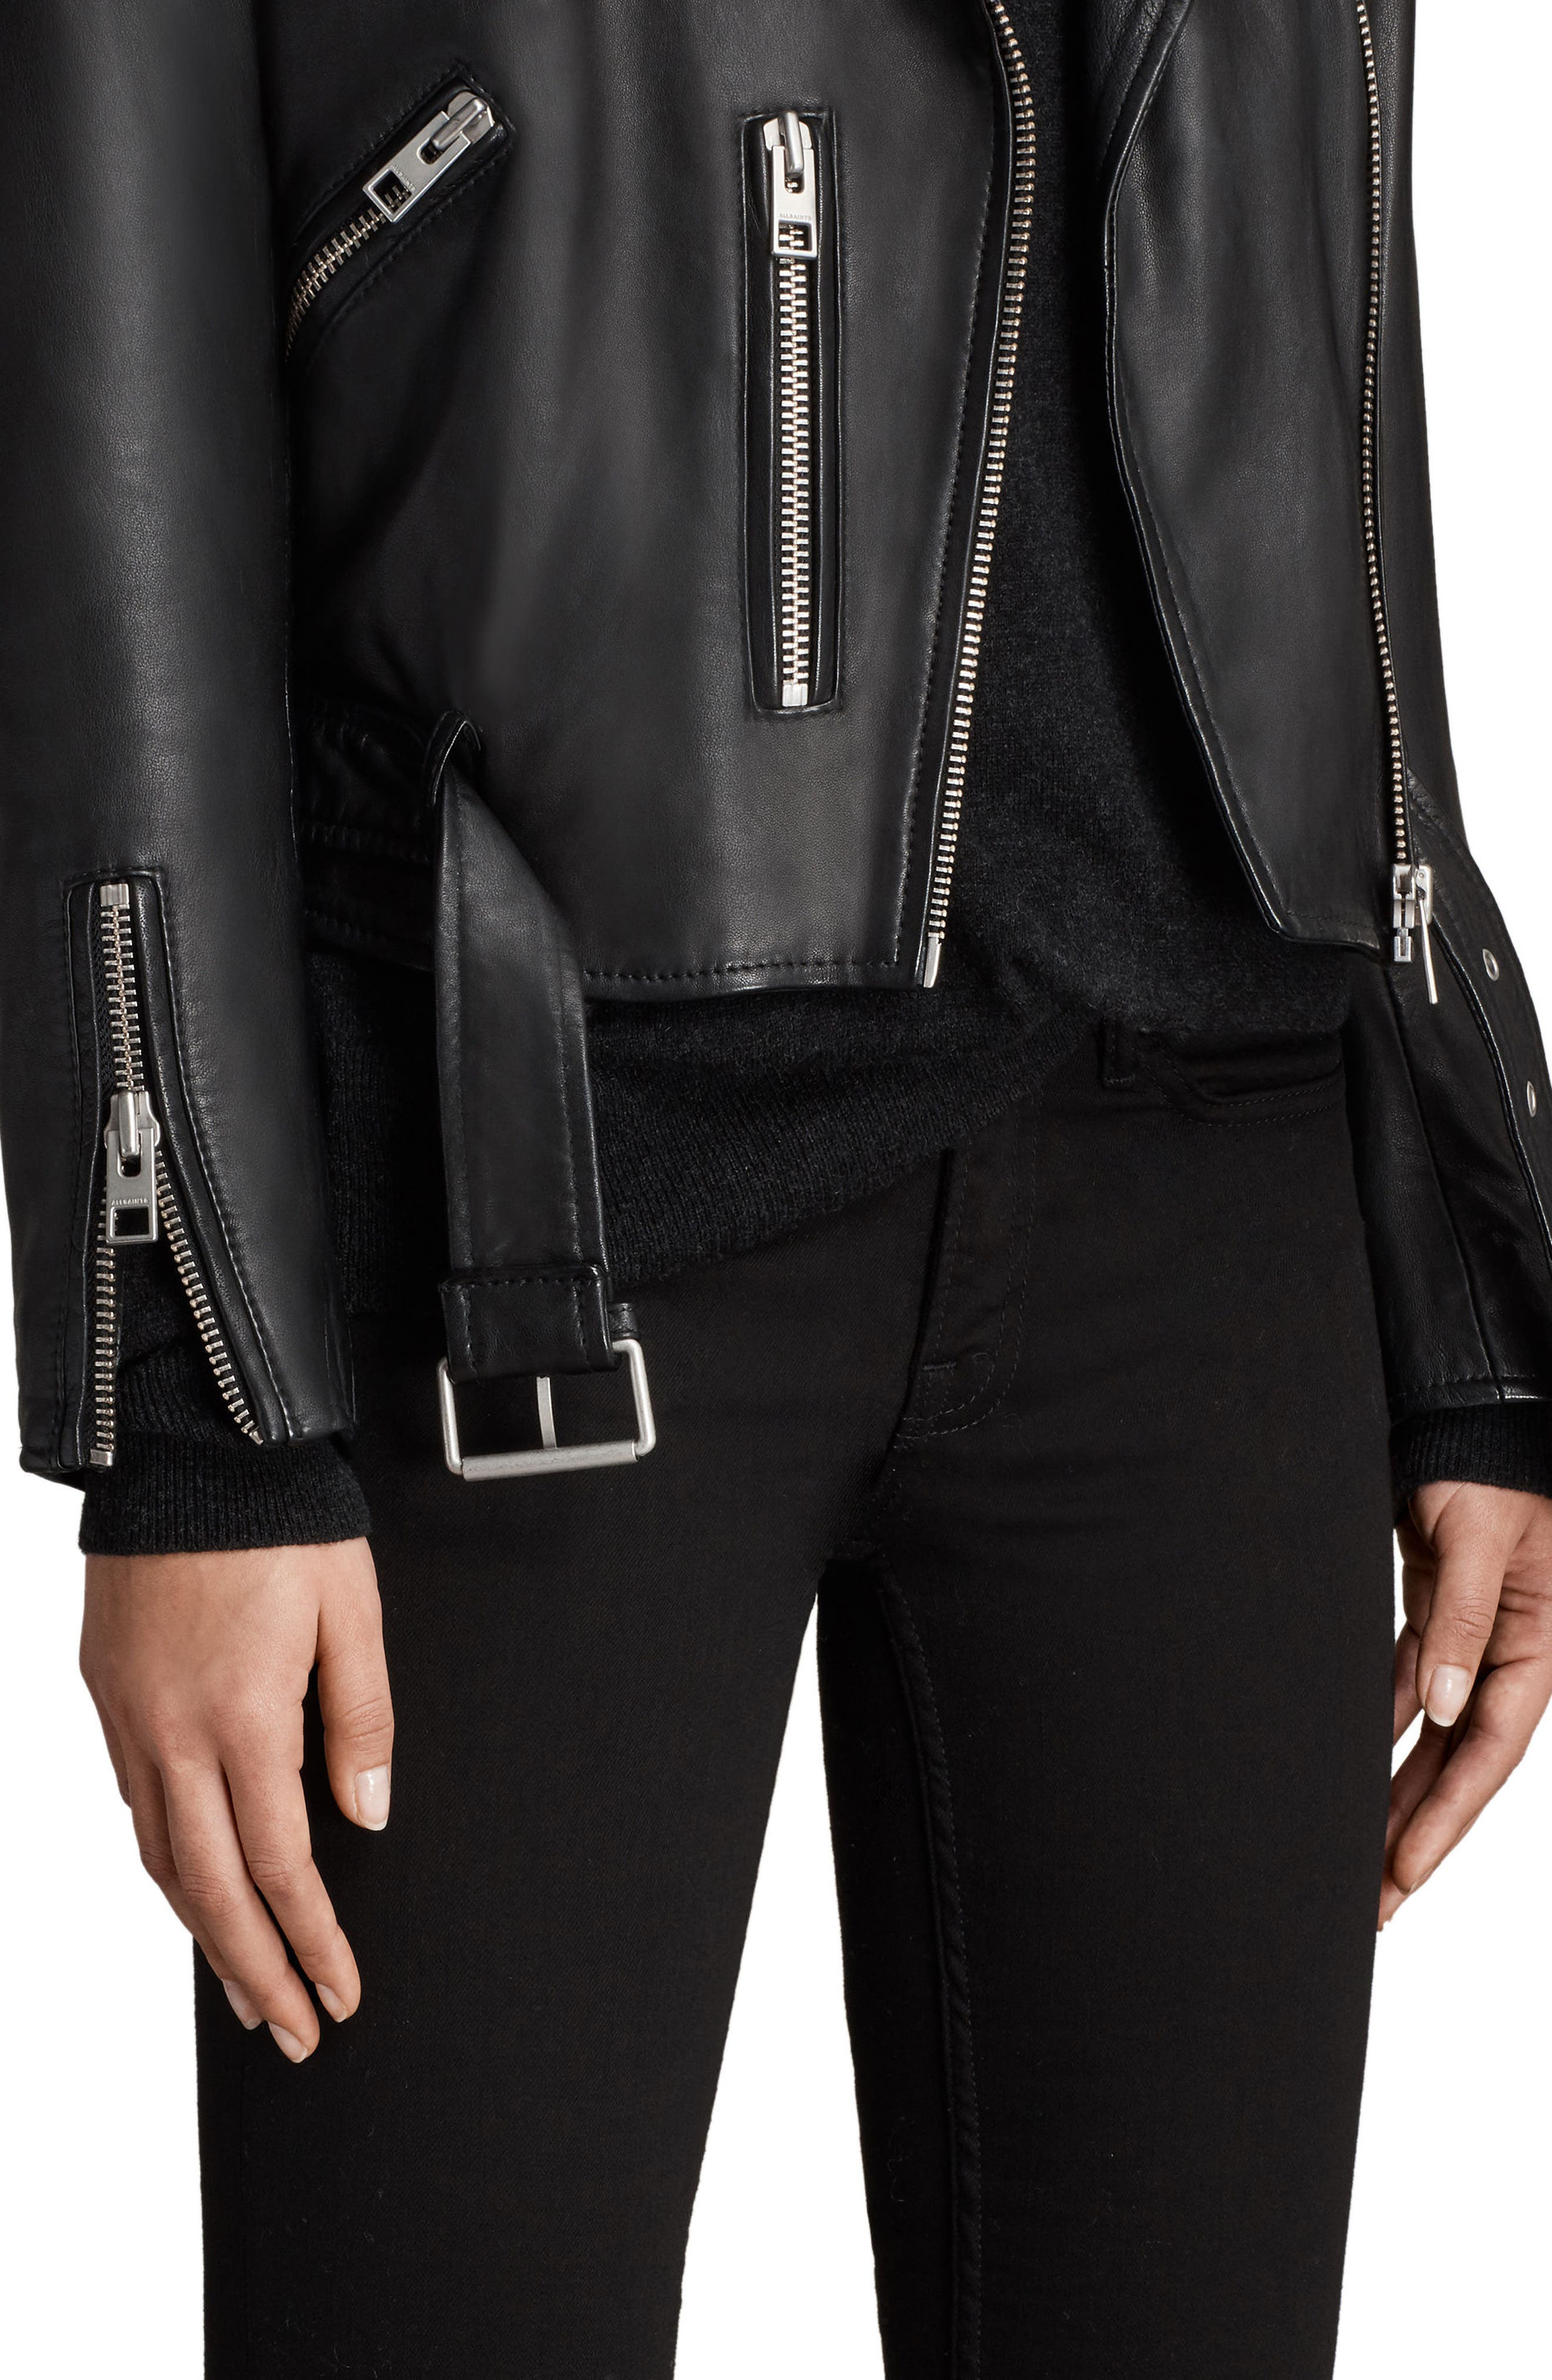 Balfern Leather Biker Jacket,                             Alternate thumbnail 5, color,                             Black